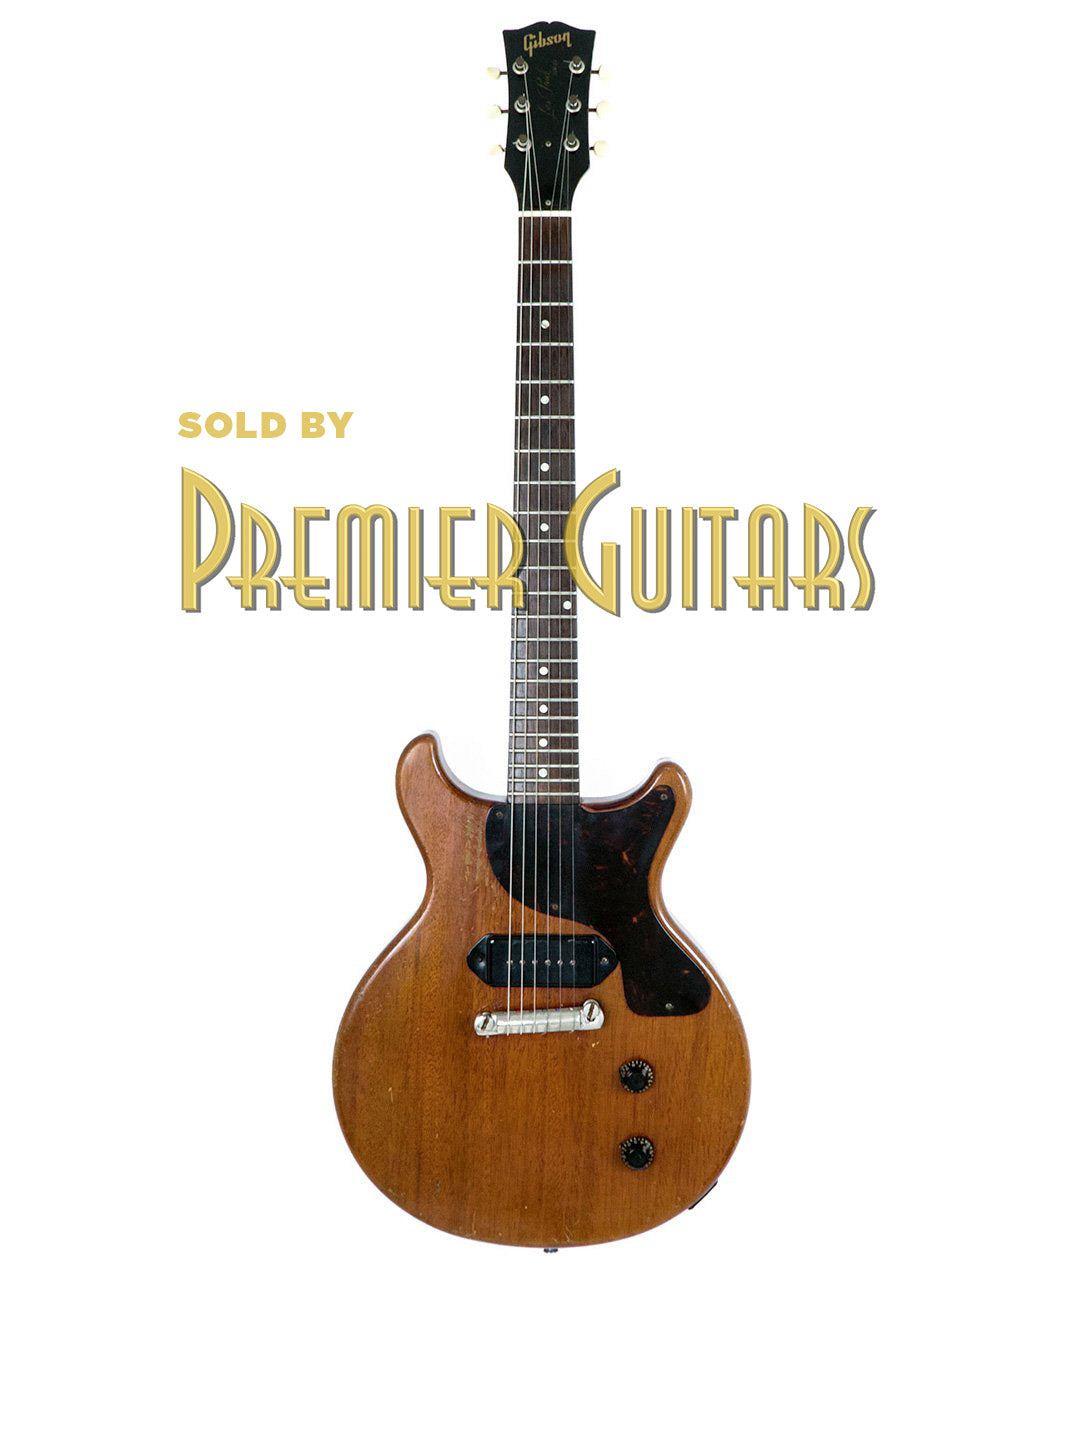 SOLD Vintage Gibson Les Paul Junior Double Cutaway – USA 1959 by Gibson - $9,995.00